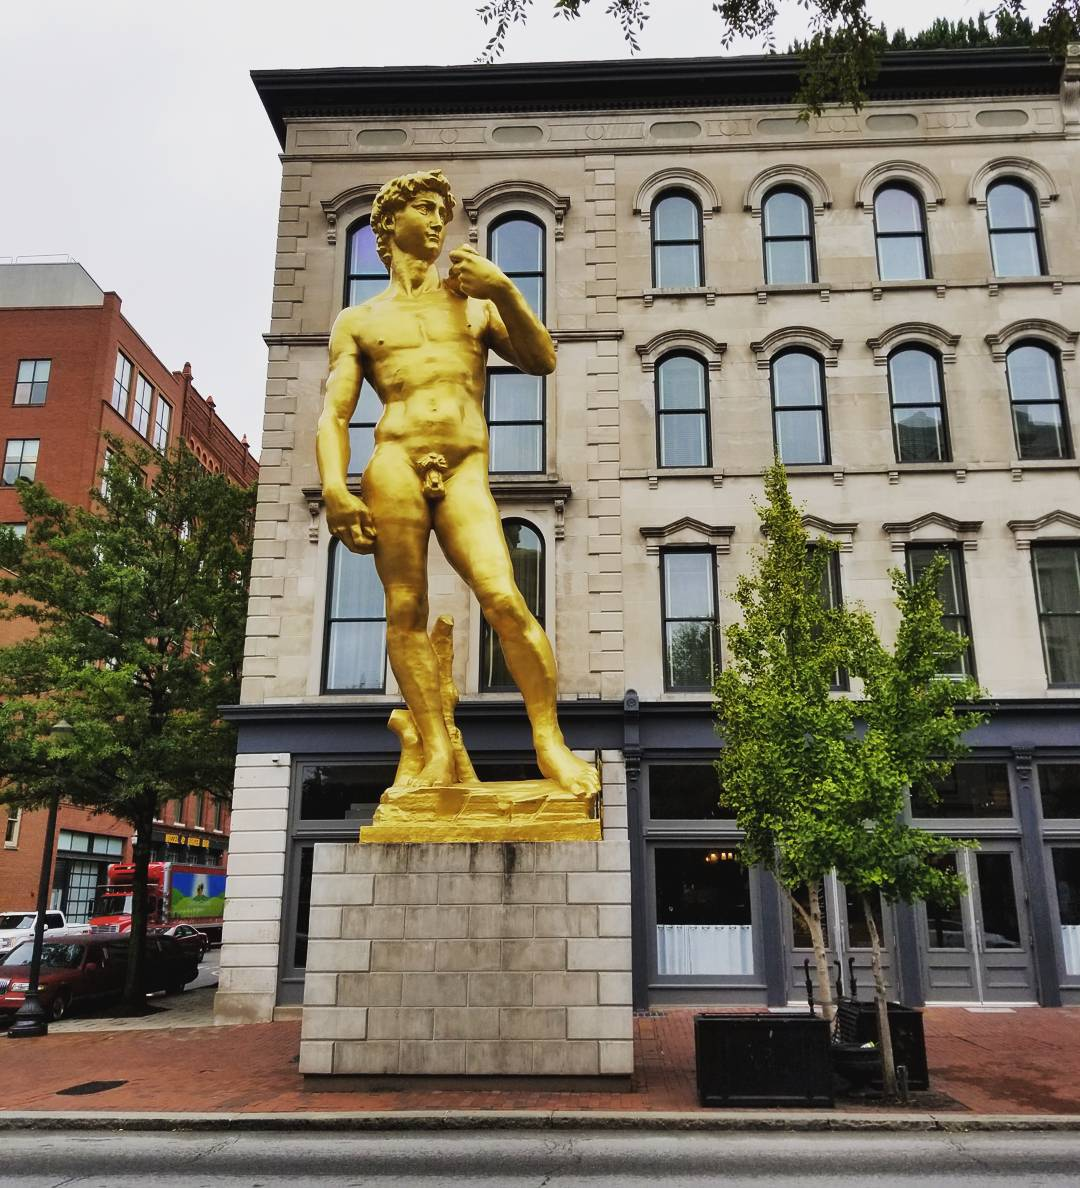 Gold Statue of David in Louisville, Kentucky